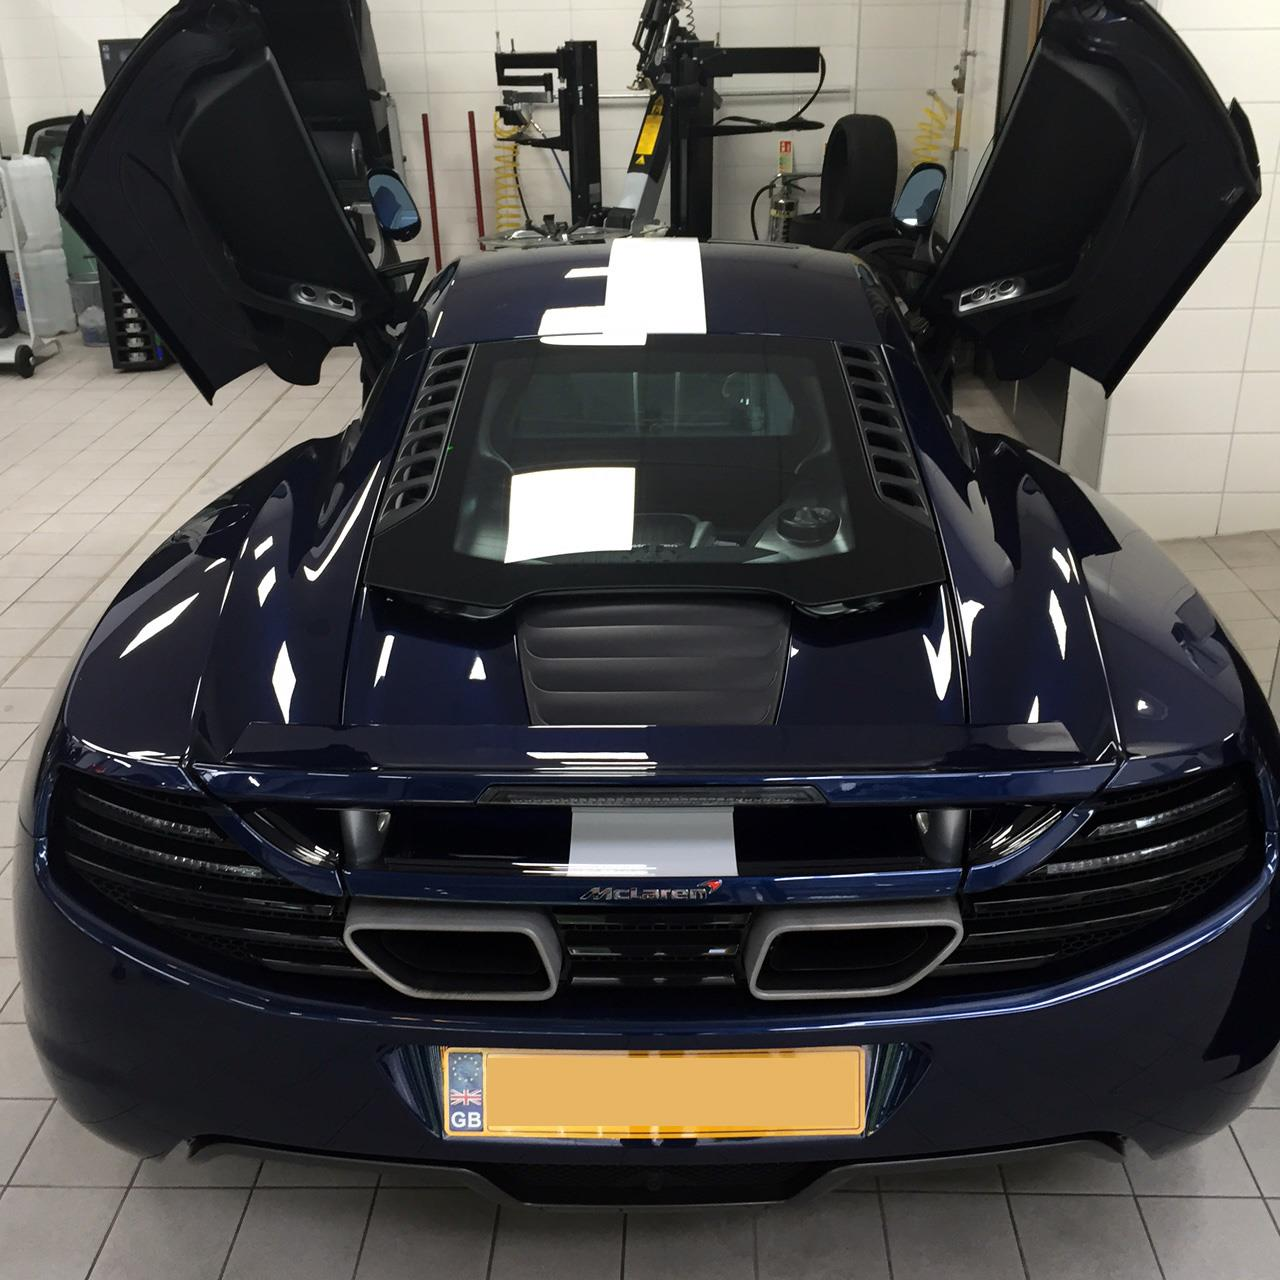 McLaren MP4-12C Carbon Fibre Wrapped Air Intakes & Racing Stripe